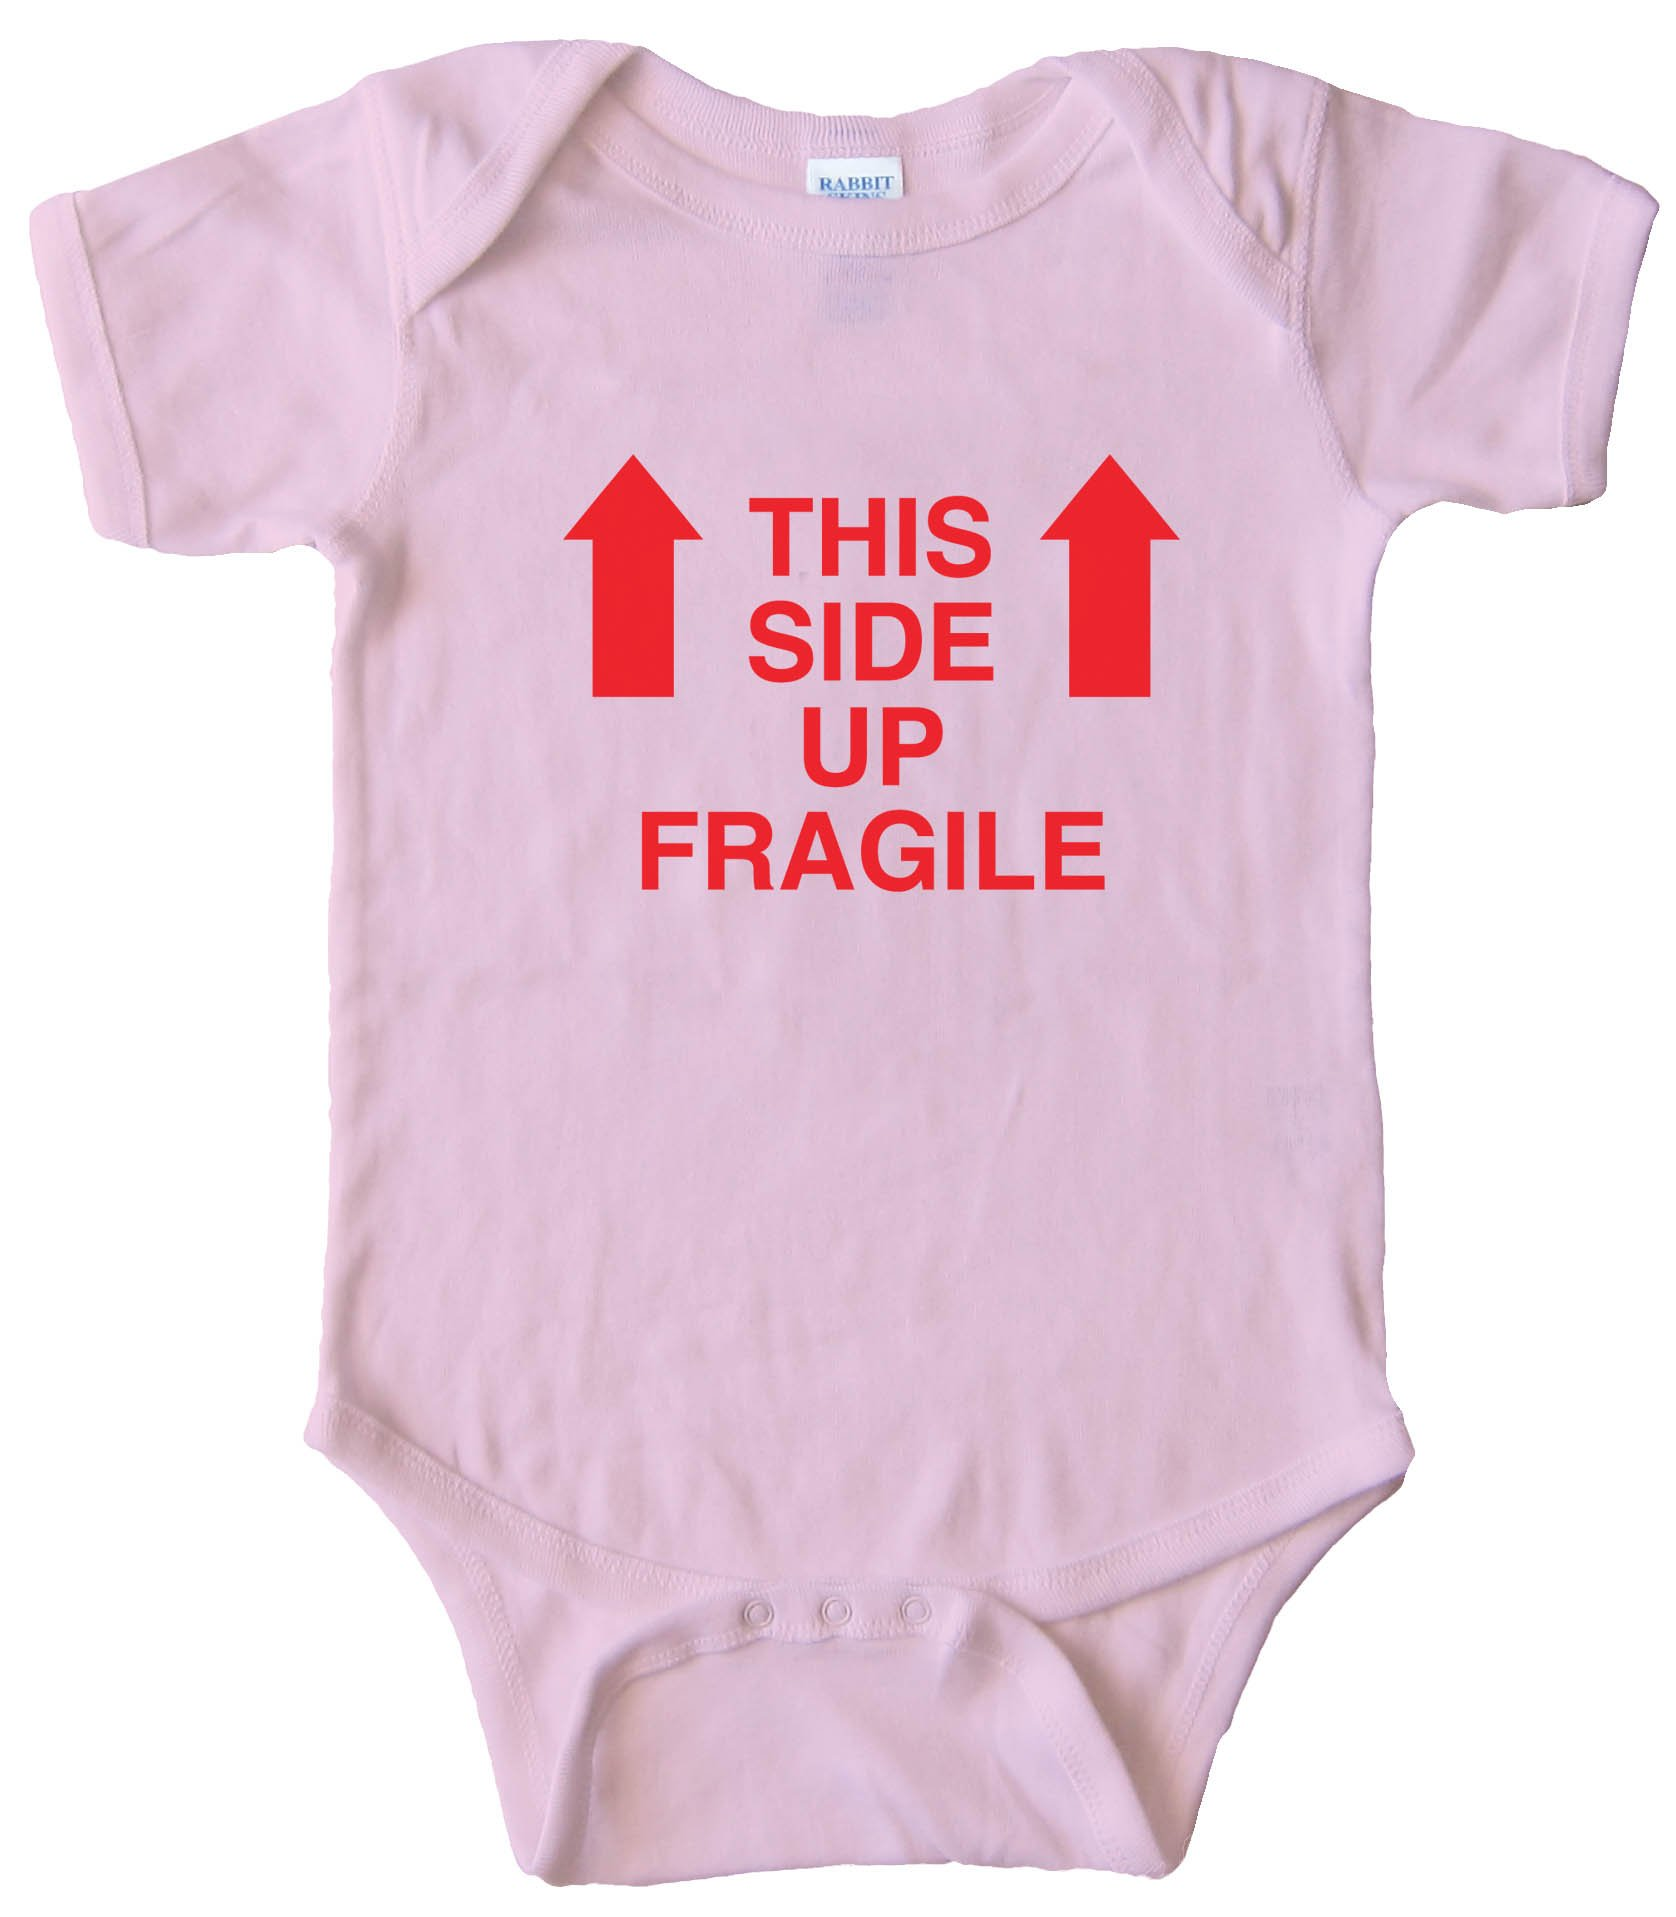 This Side Up - Fragile - Baby Bodysuit